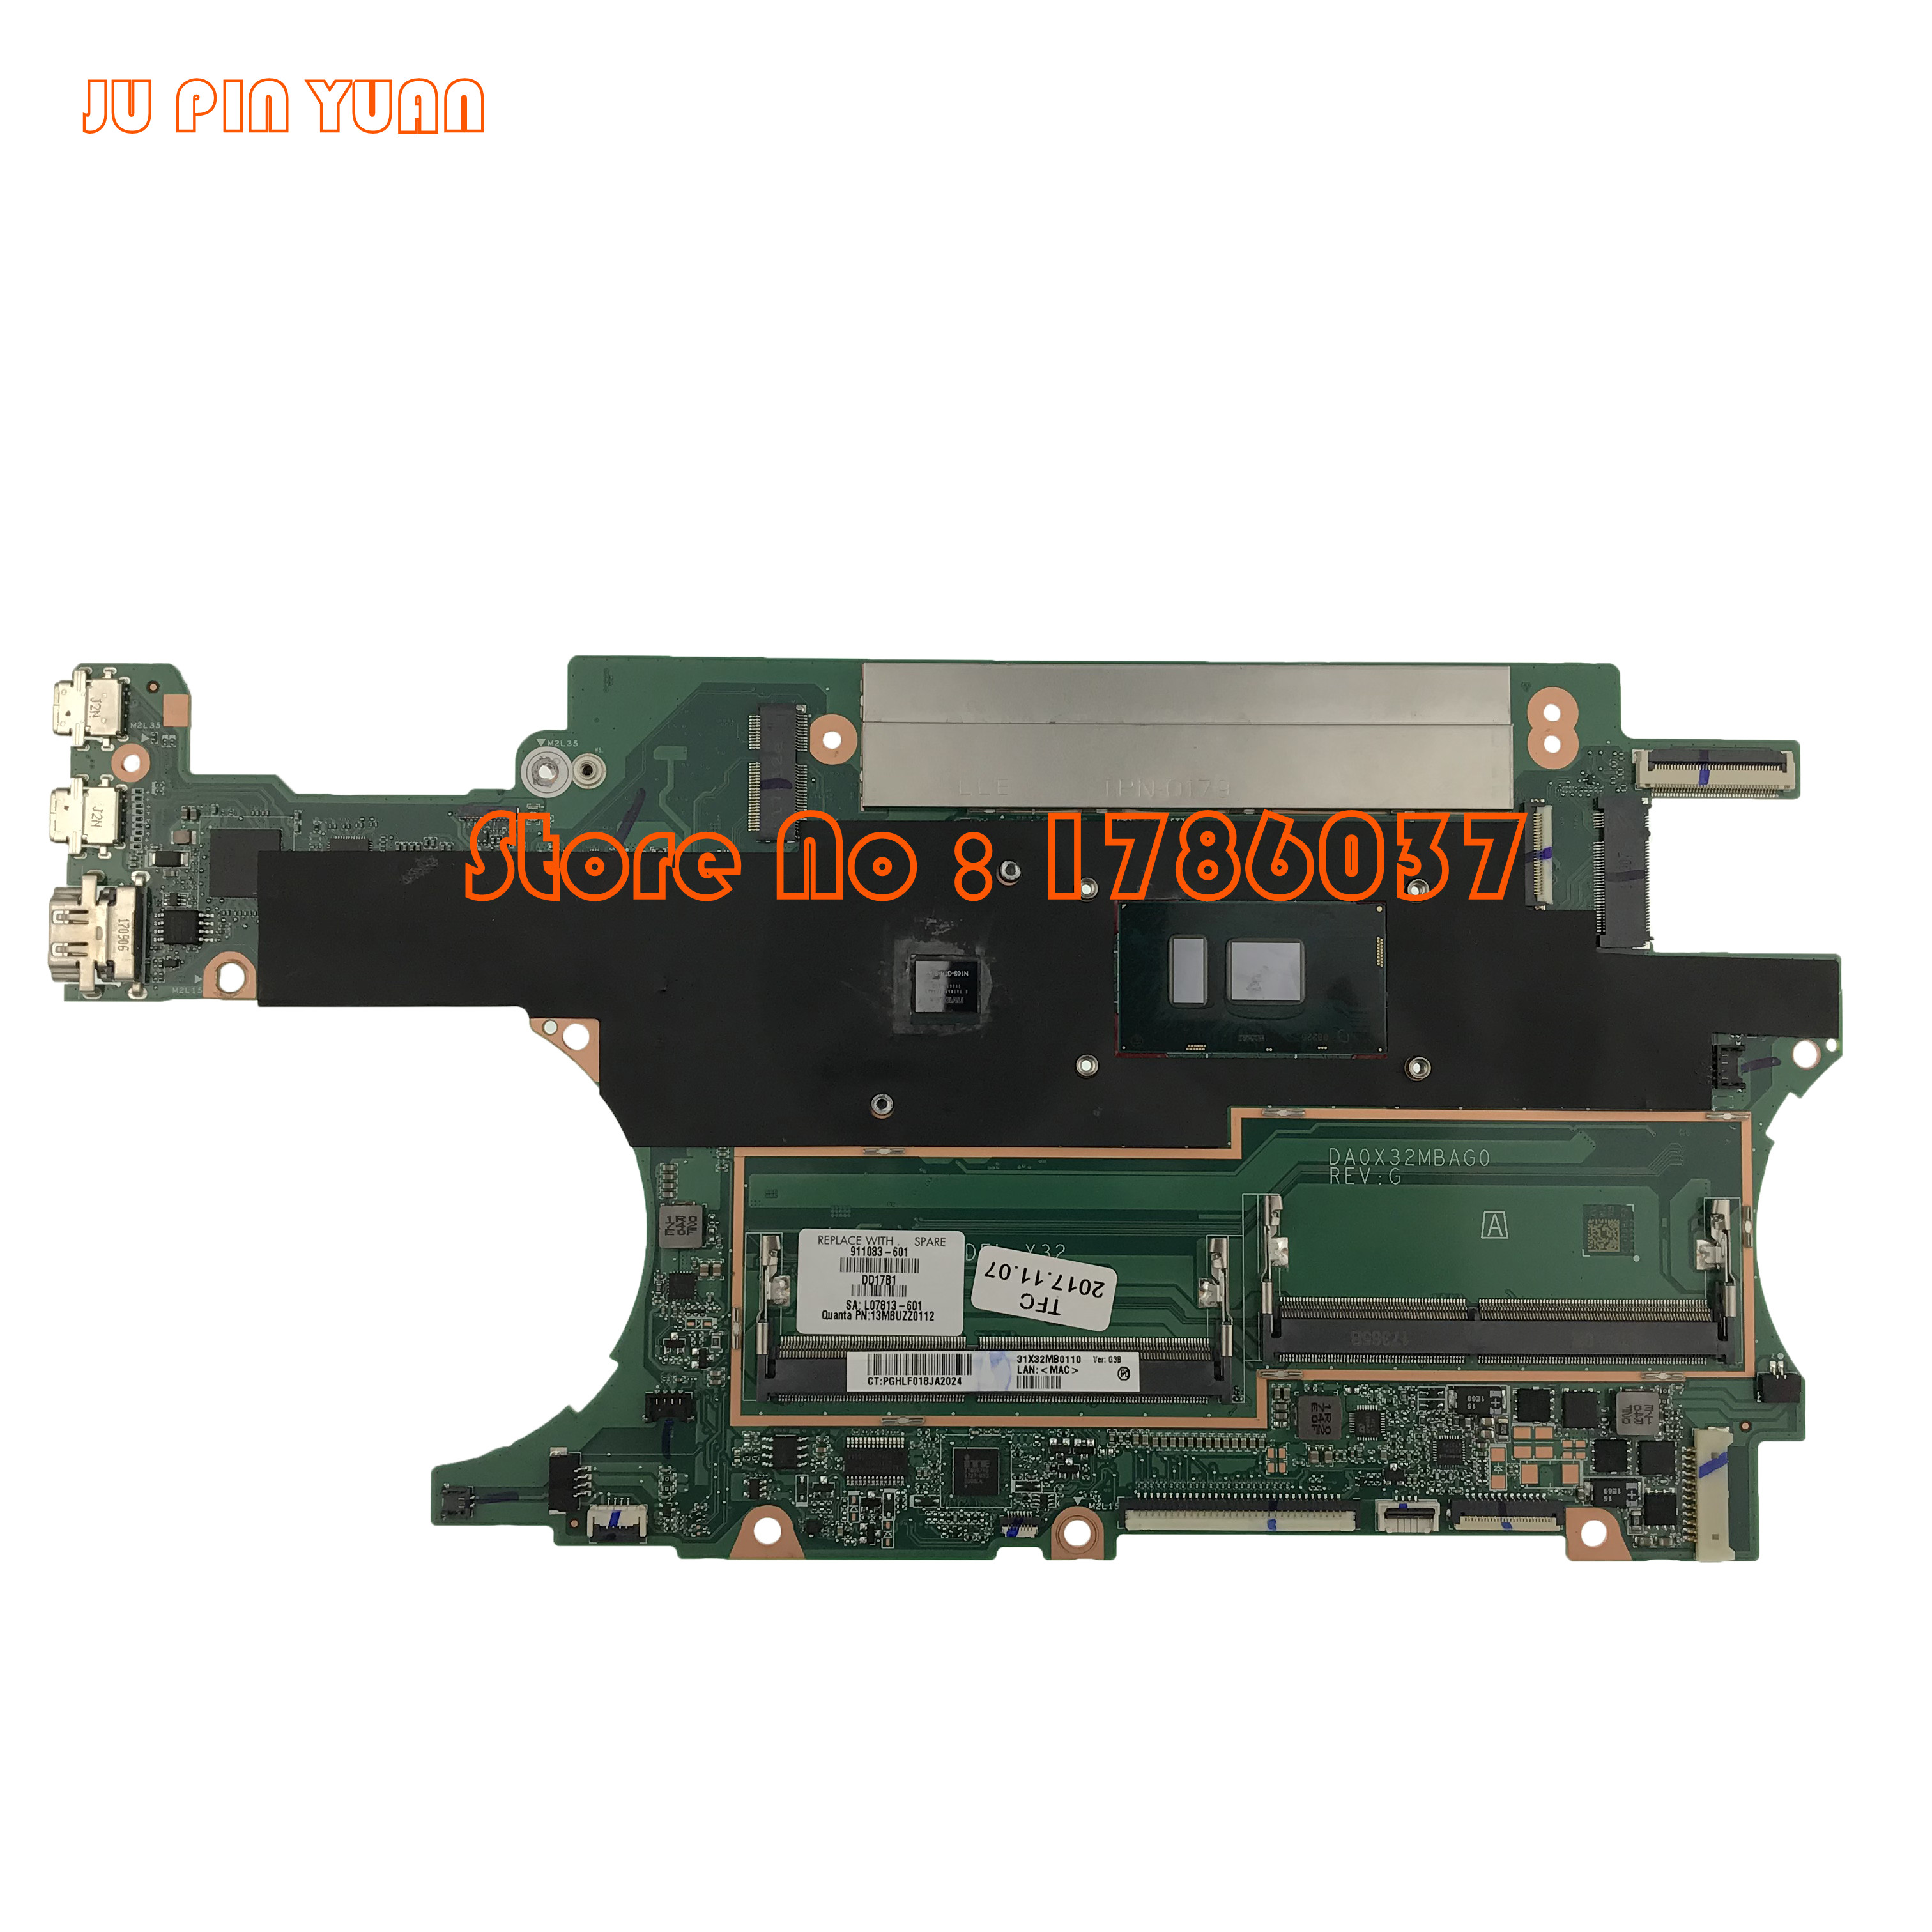 JU PIN YUAN 911083-601 911083-501 DA0X32MBAG0 For HP SPECTRE X360 15-BL Laptop Motherboard With I7-7500U 100% Fully Tested